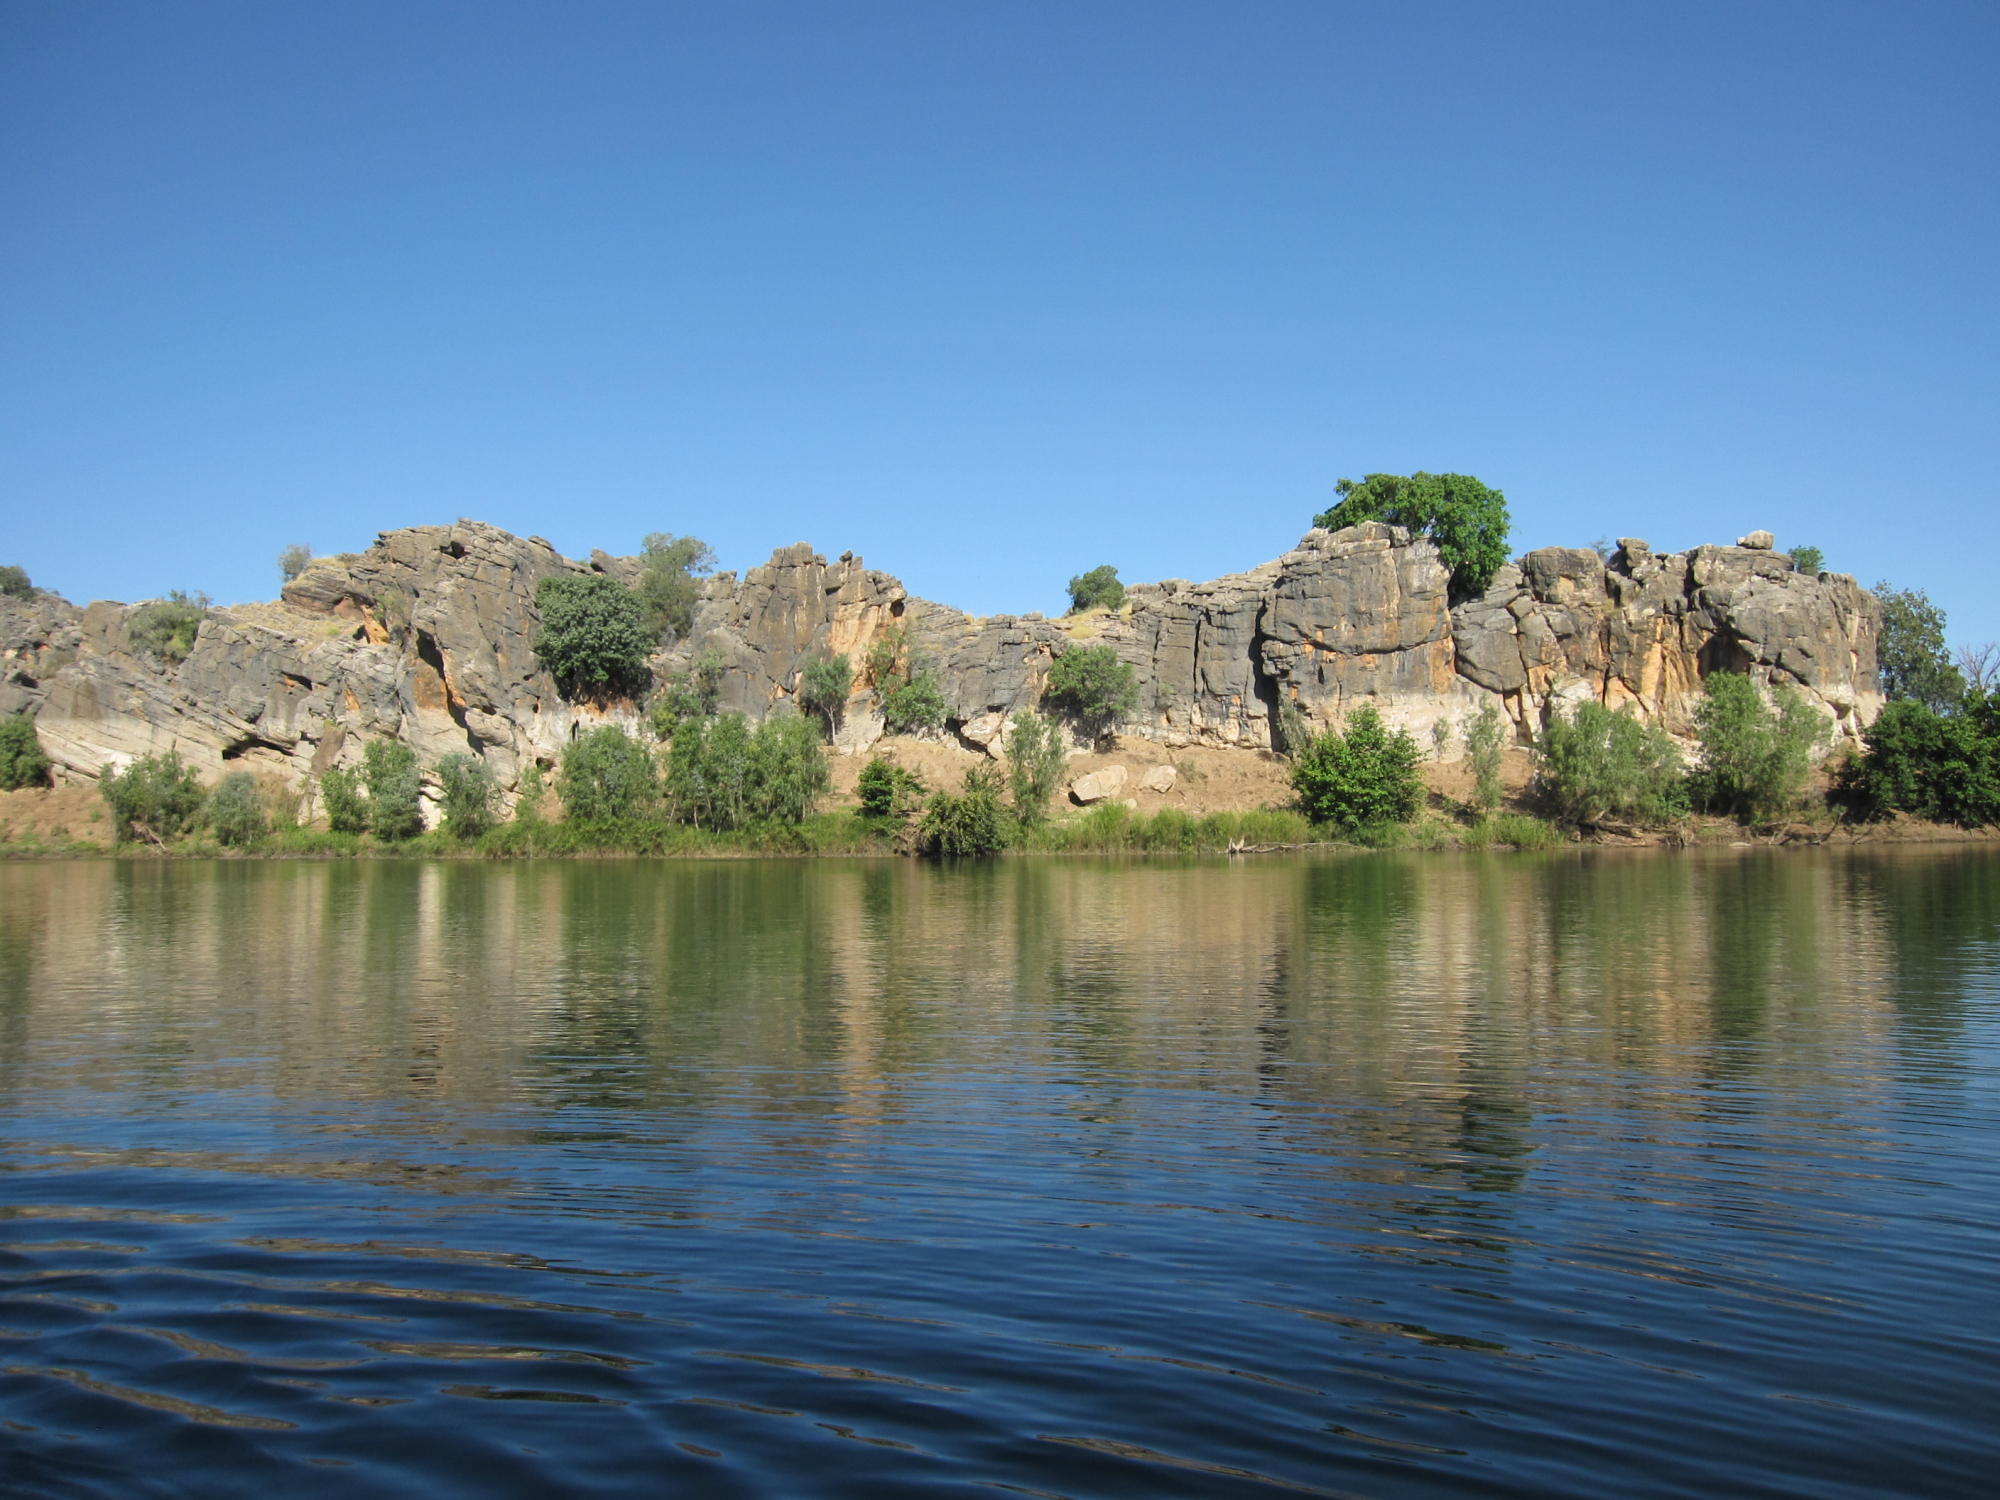 Western Australia, | Geikie Gorge, Fitzroy Crossing, The Kimberley, North West